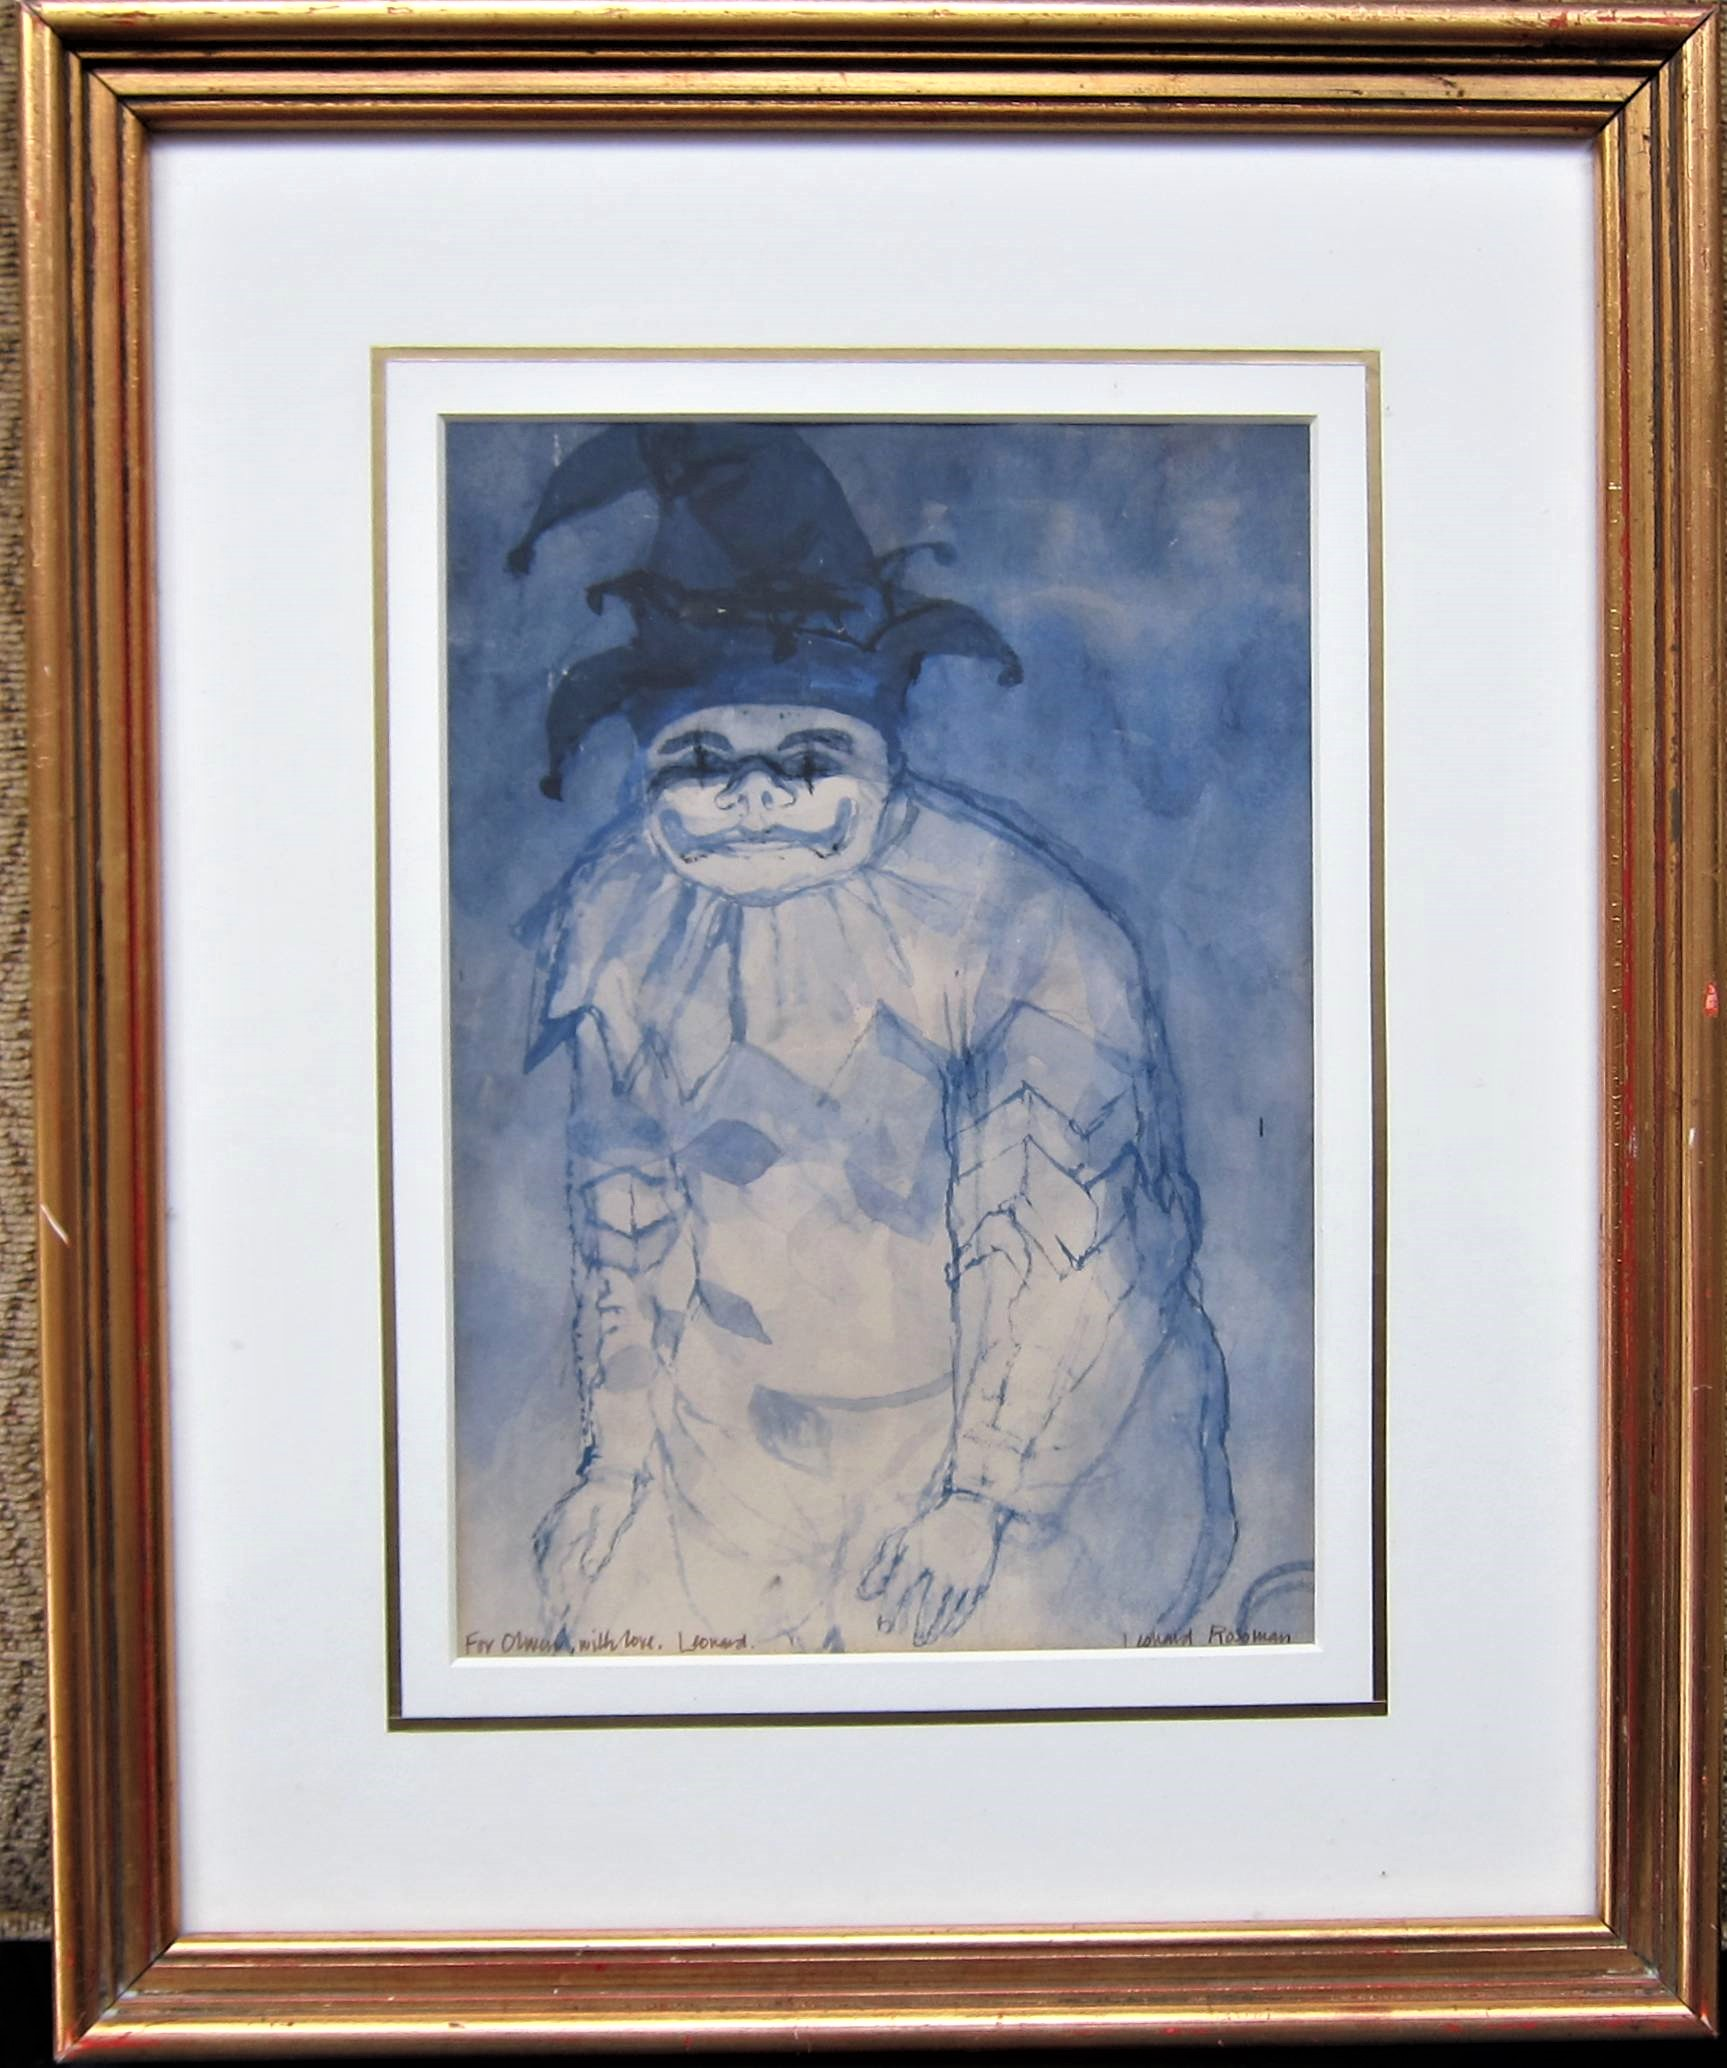 LEONARD ROSOMAN R.A. [1913-2012]. The Fool. watercolour and ink on paper. signed. 25 x 17 cm [ - Image 2 of 2